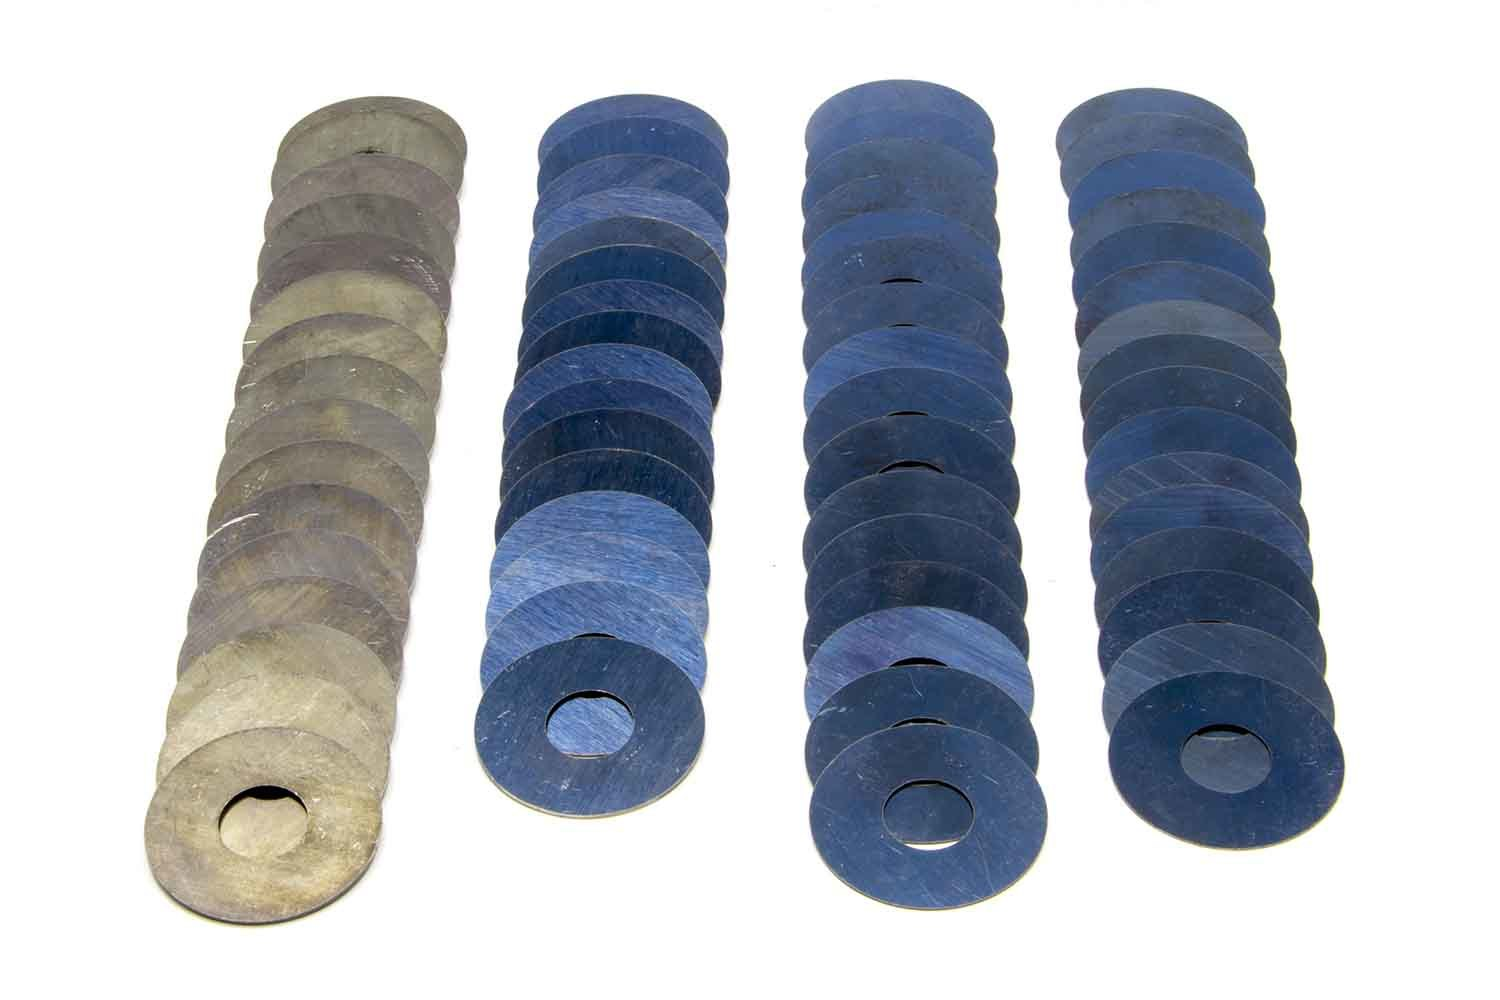 PAC Racing Springs PAC-KS94 Valve Spring Shim, 0.015 / 0.020 / 0.030 / 0.050 in Thick, 1.500 in OD, 0.570 in ID, Steel, Kit